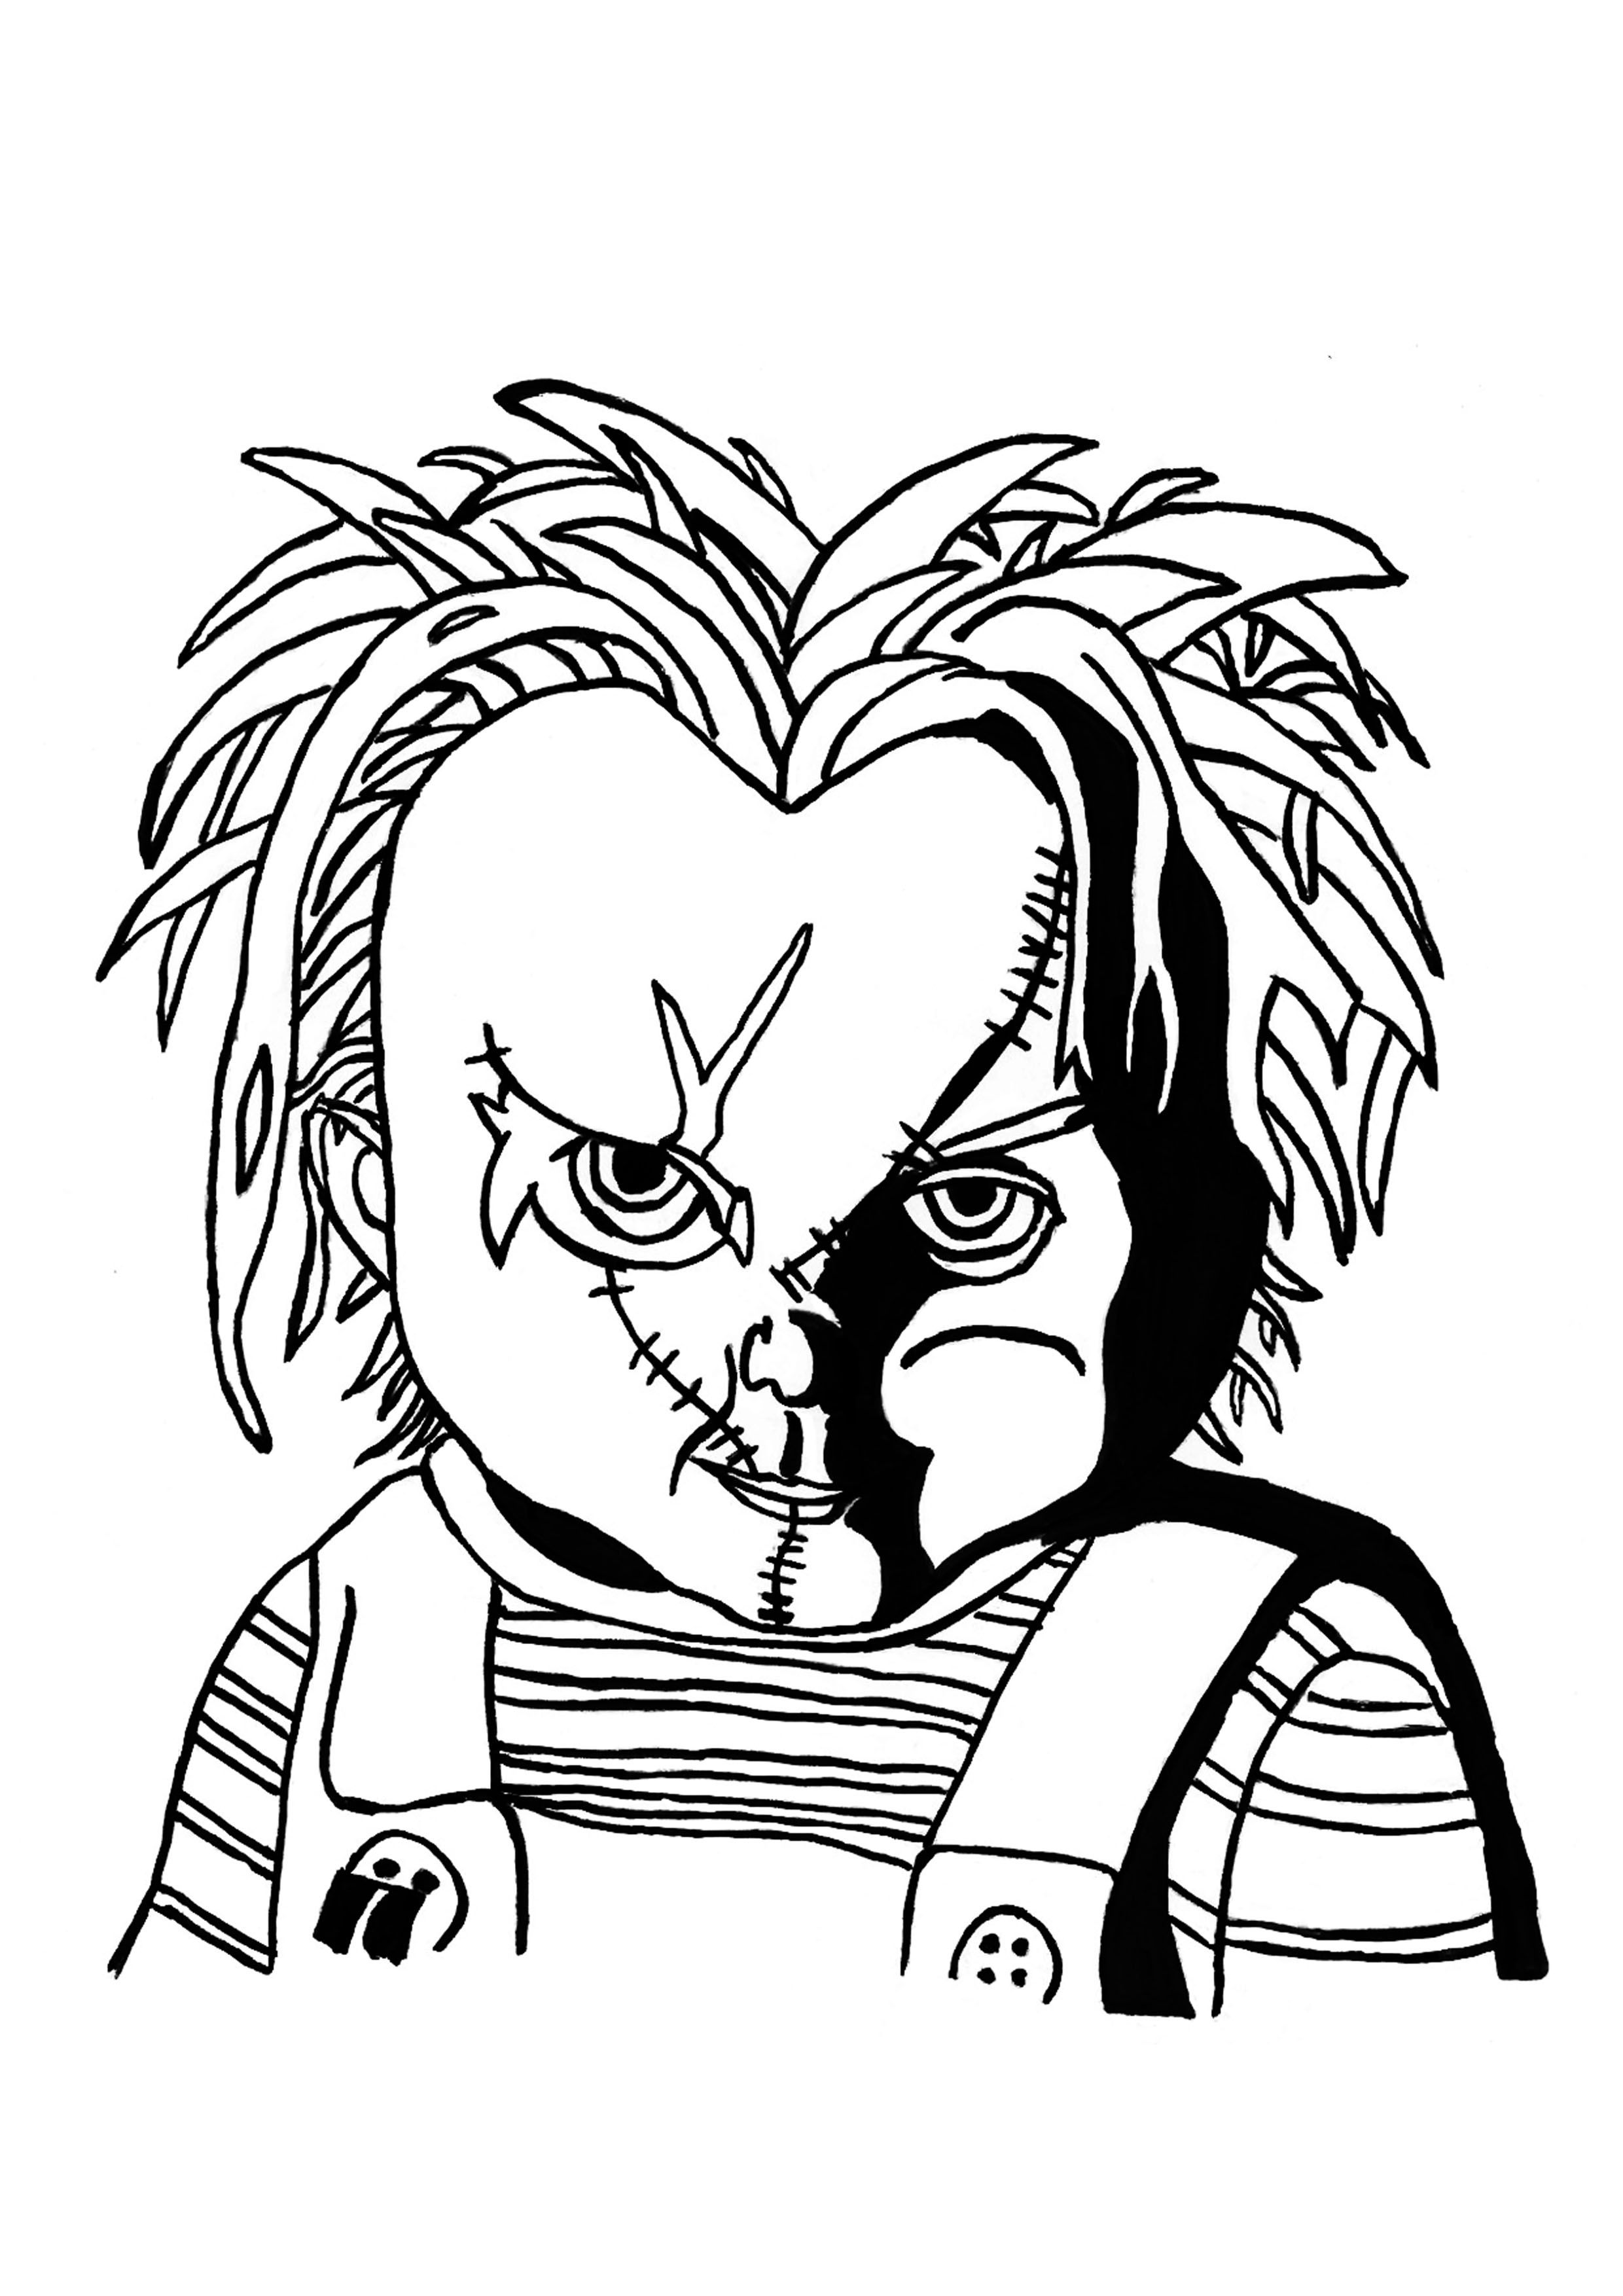 Chucky Coloring Pages : chucky, coloring, pages, Halloween, Print, Coloring, Pages, Pages,, Kids,